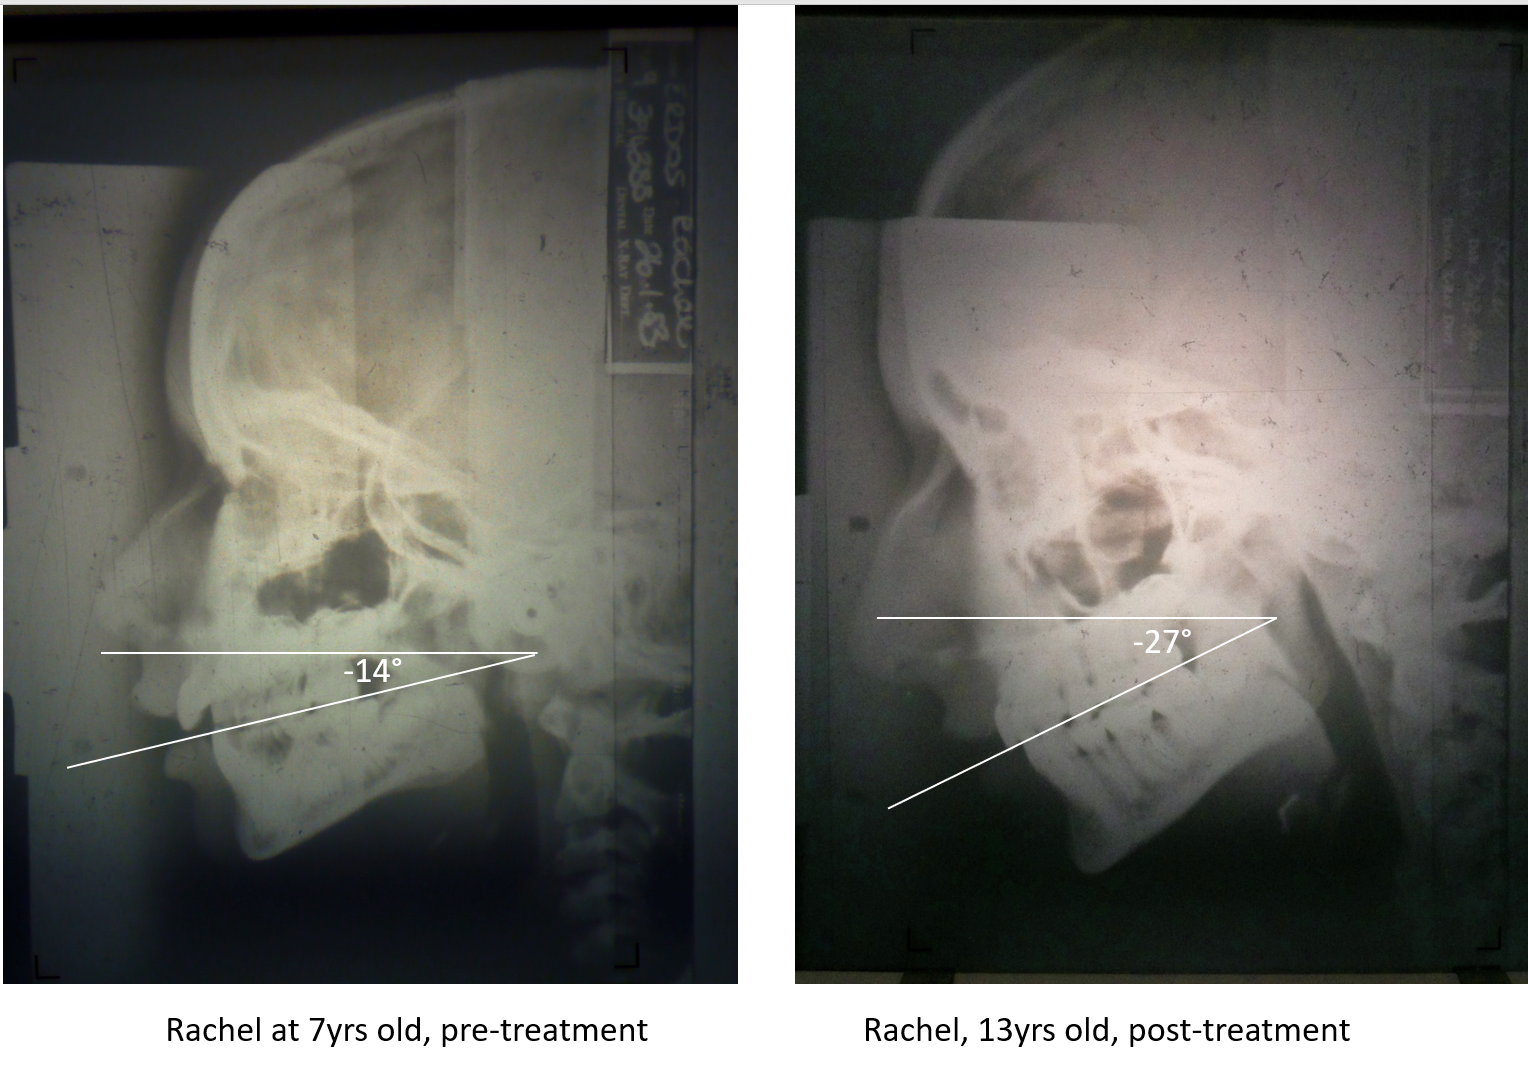 rachel before and after x-ray